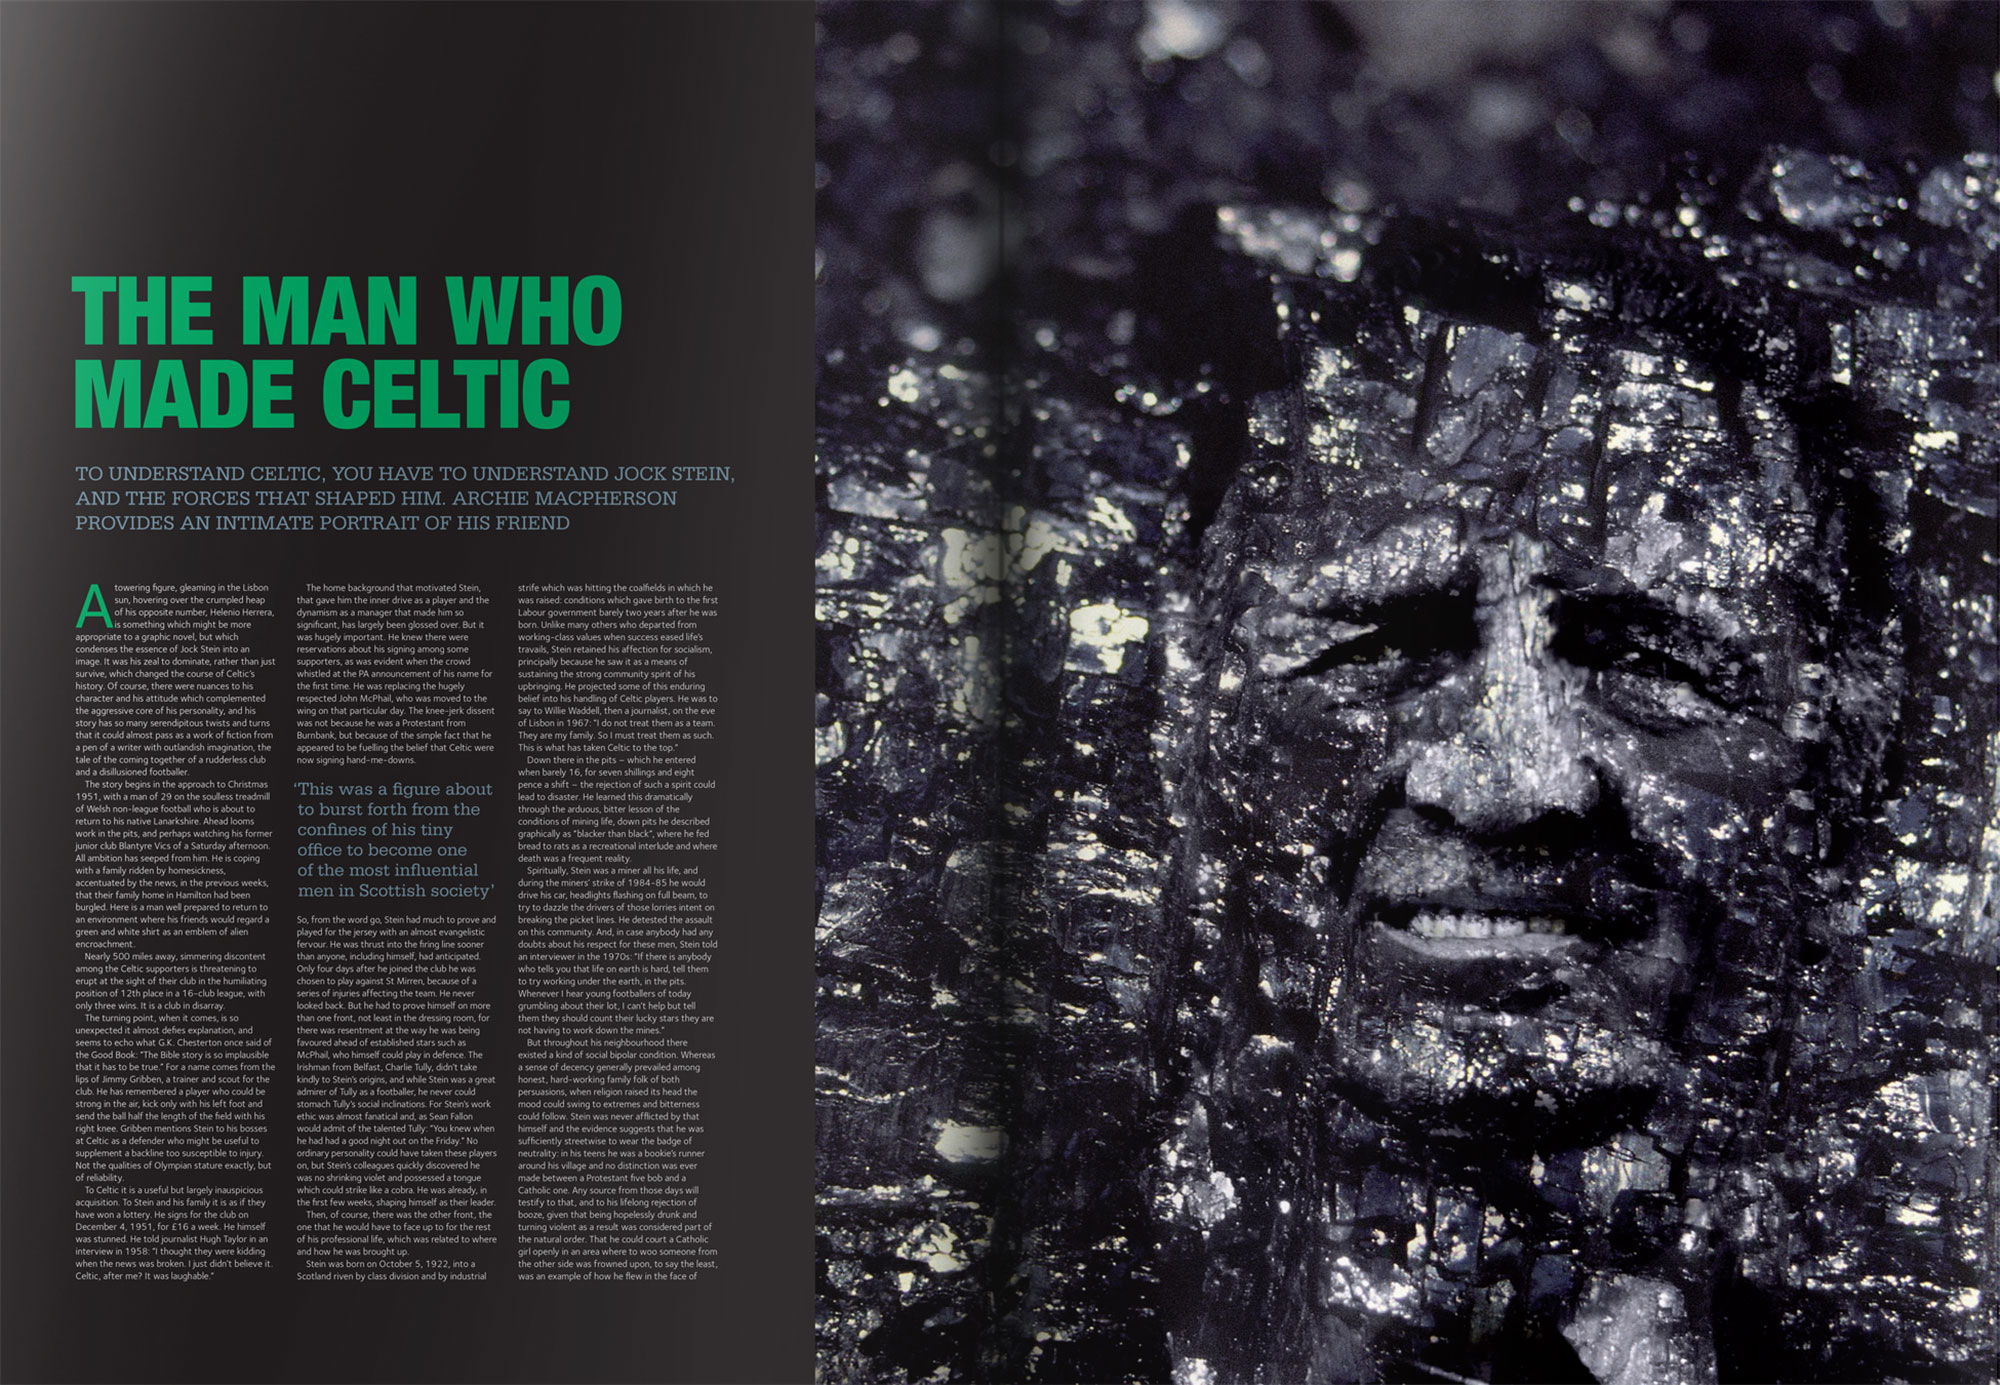 The man who made Celtic